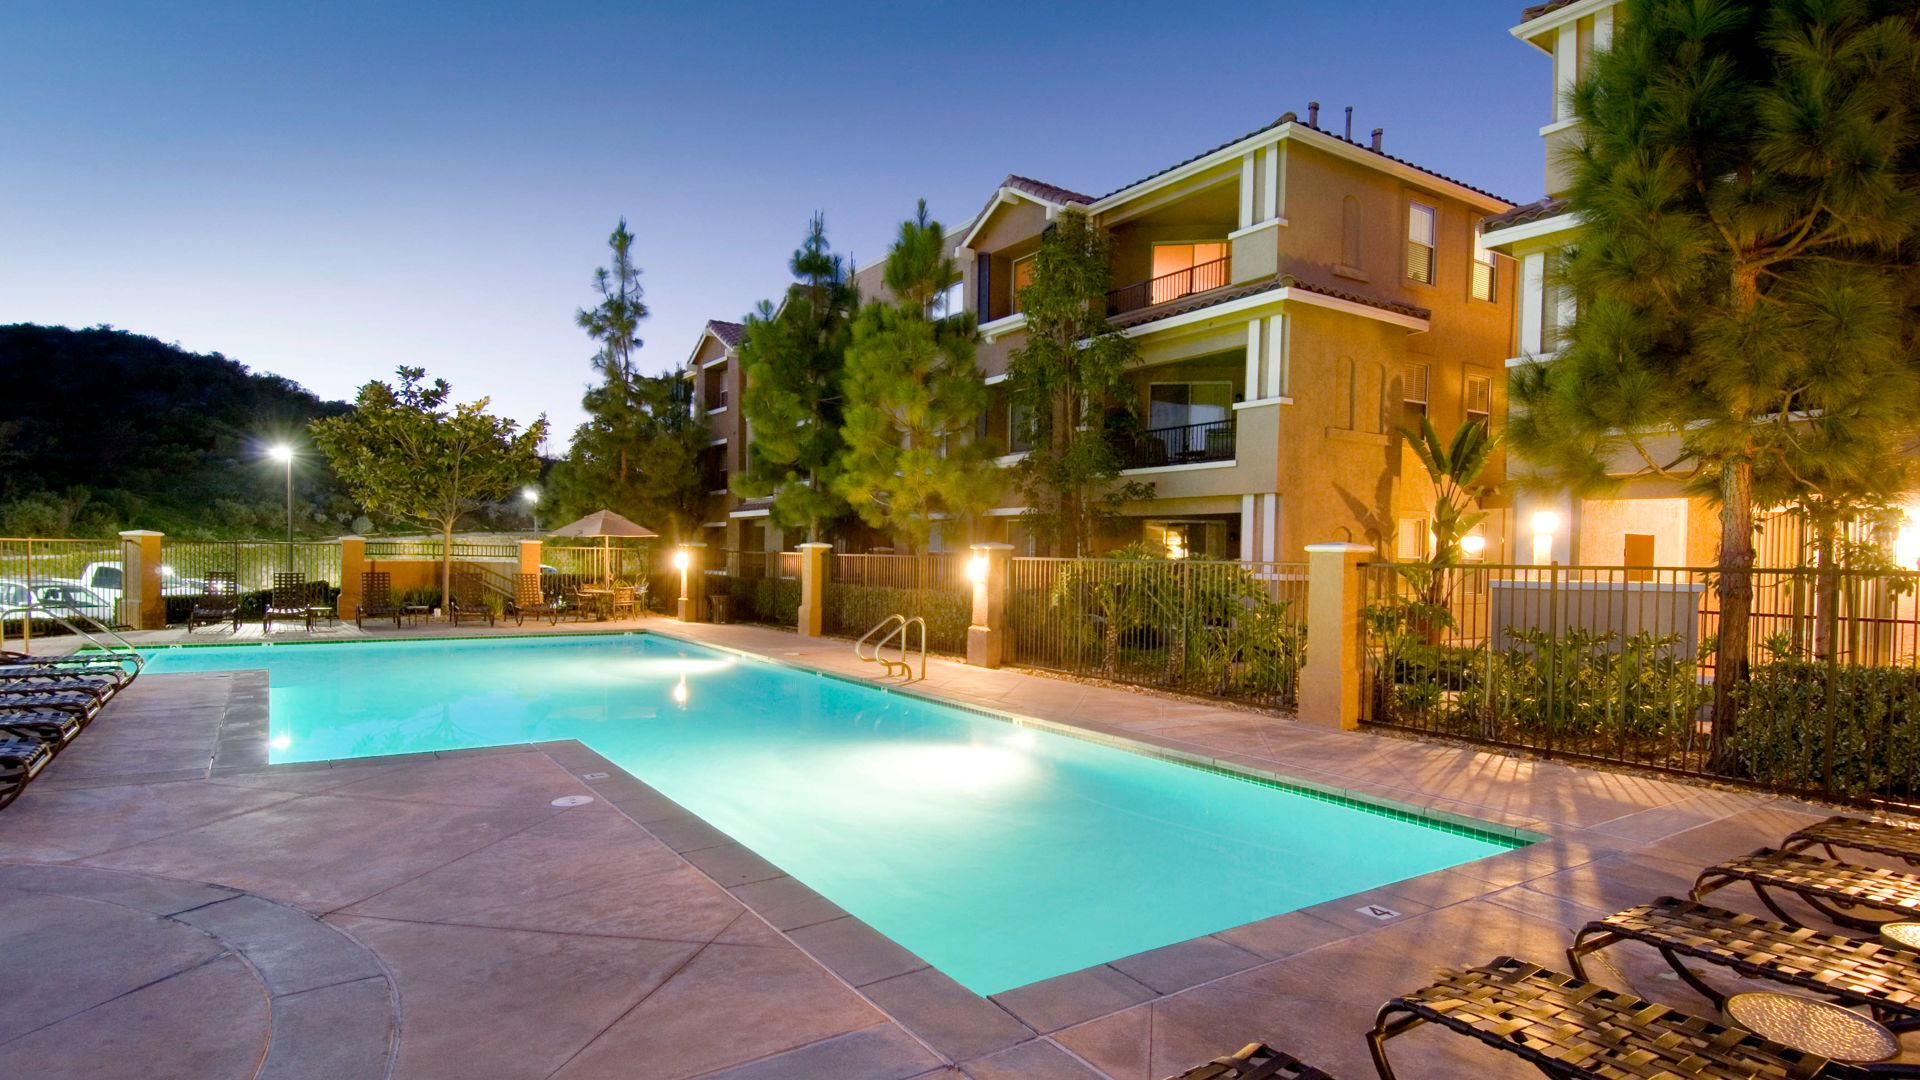 Encinitas Heights Apartments - Swimming Pool